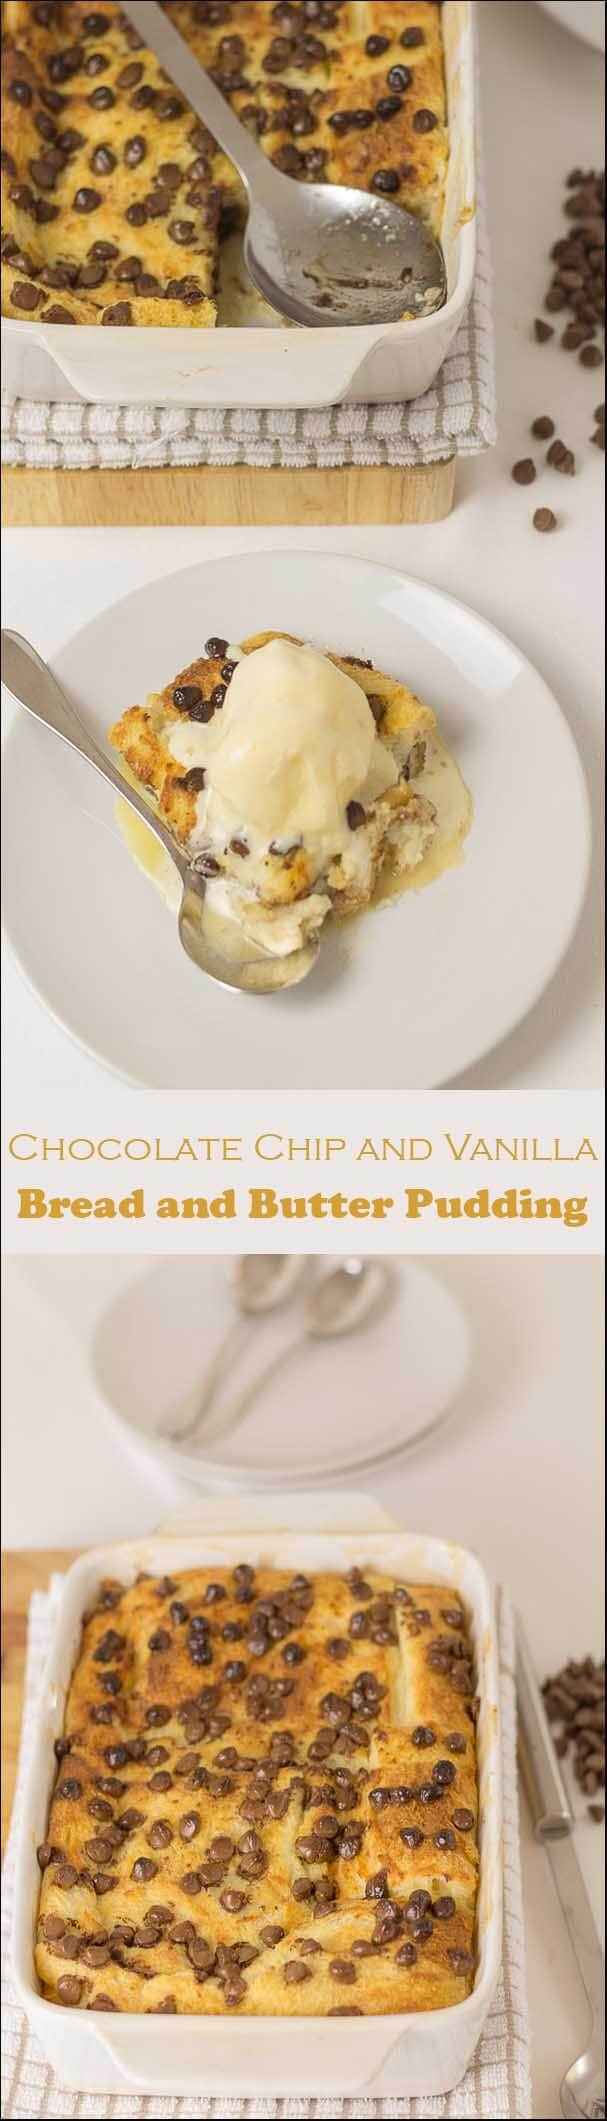 The traditional bread and butter pudding is brought up to date with this wicked chocolate chip vanilla bread and butter pudding. This is simple to make and you will love it!